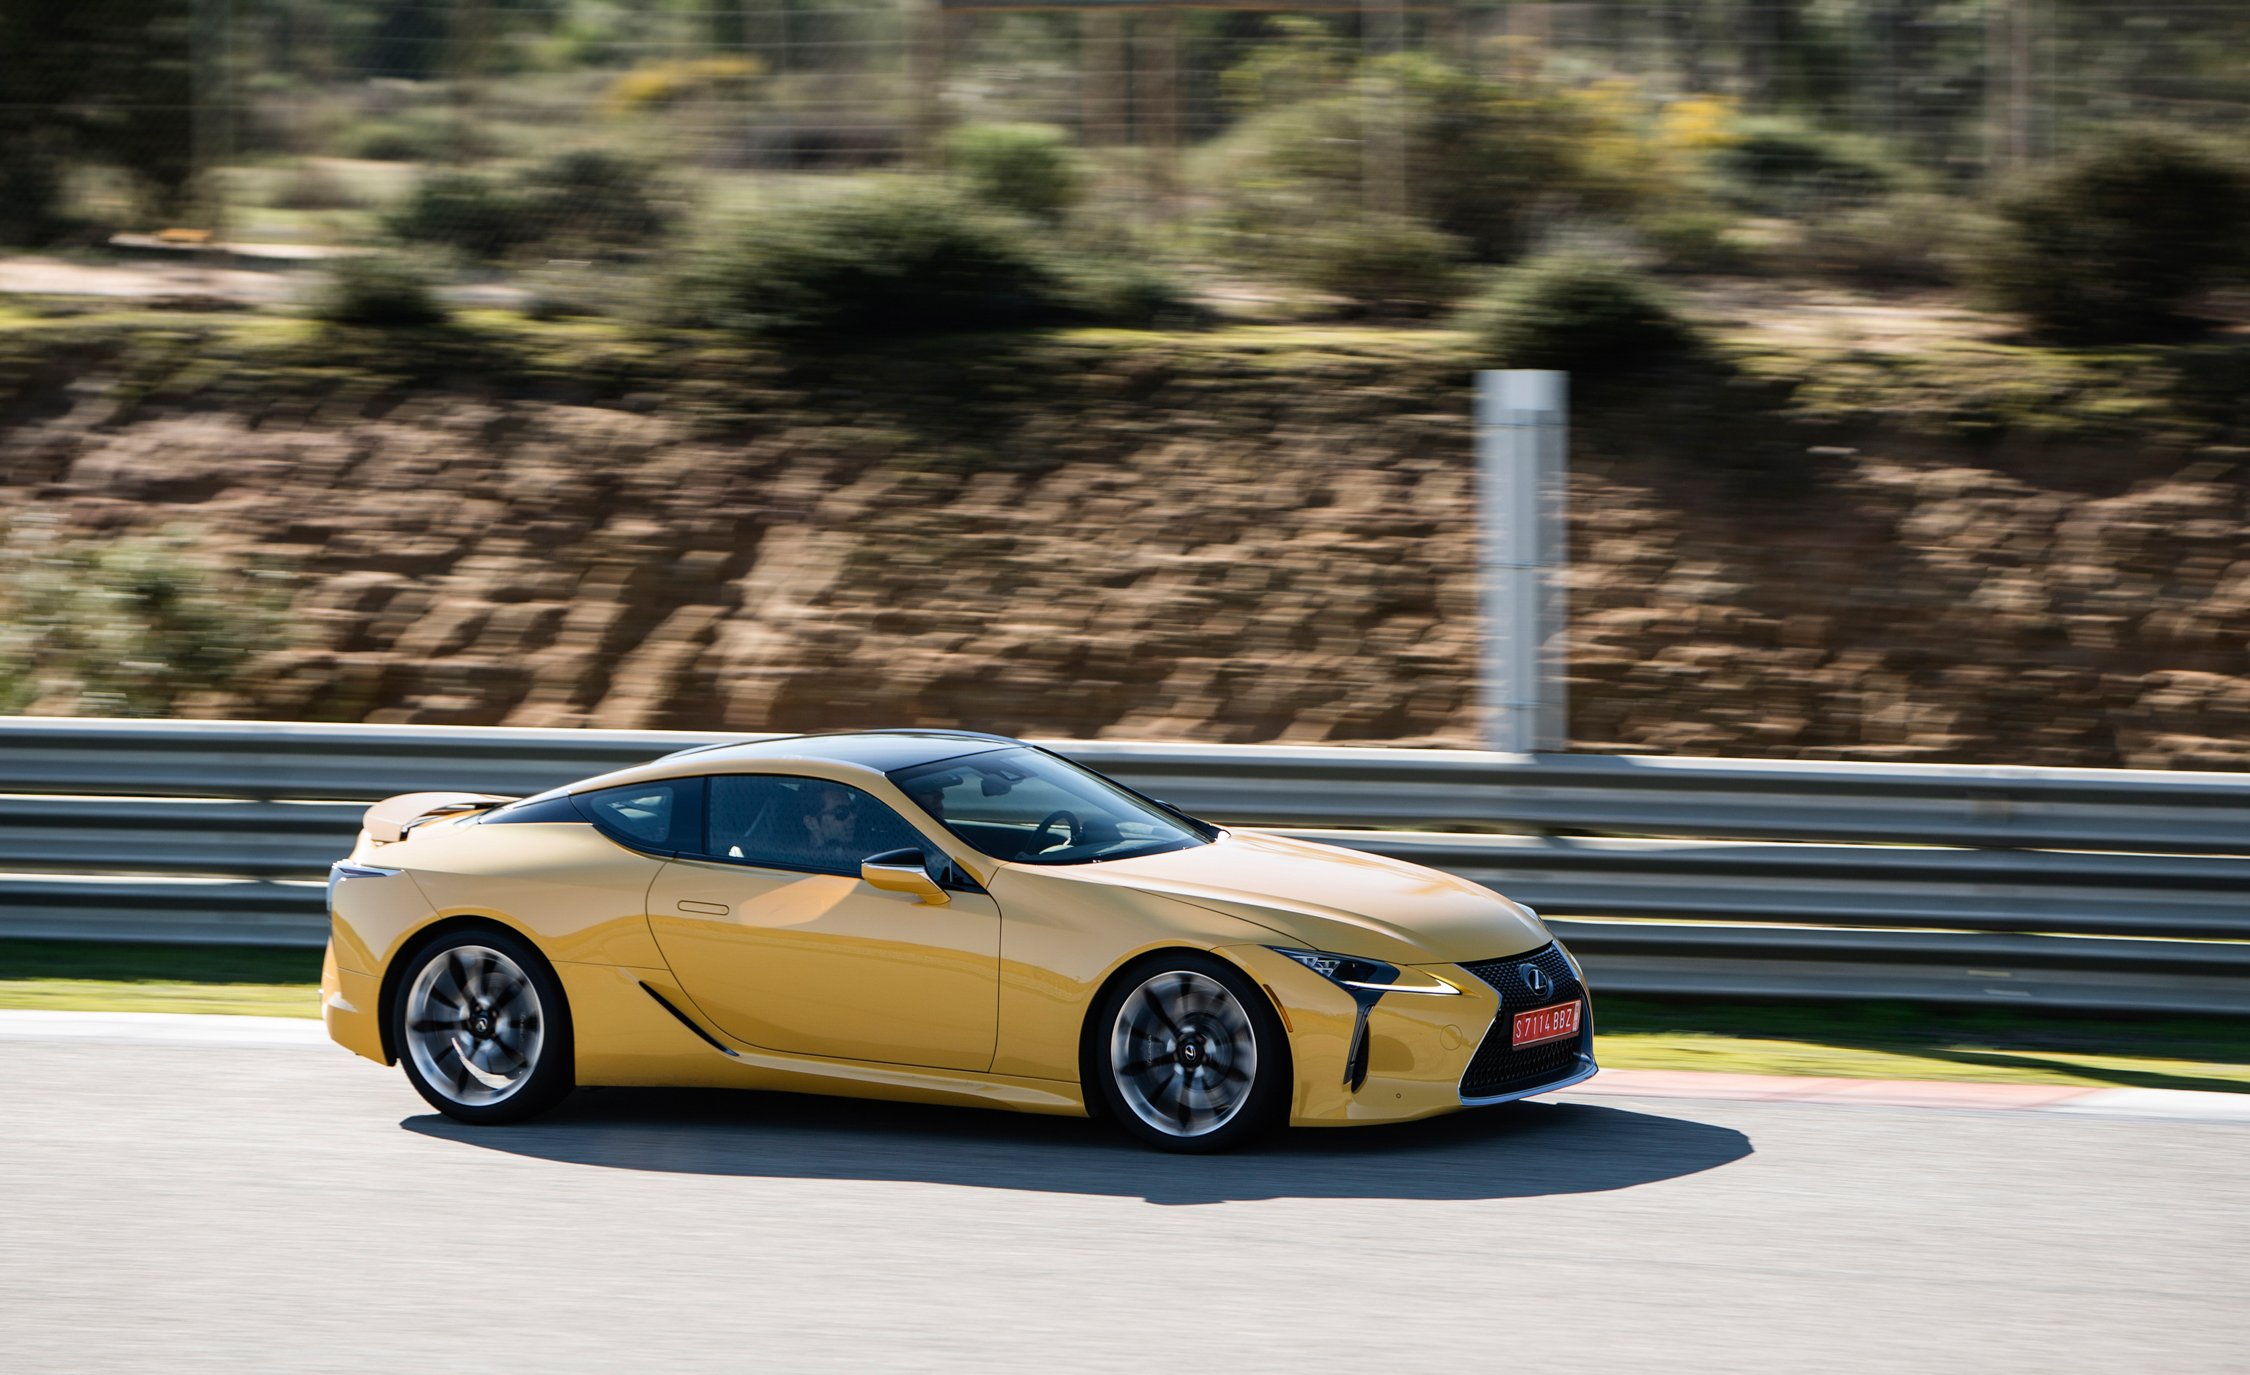 2018 Lexus Lc 500 Yellow Test Drive Front And Side View (View 16 of 84)